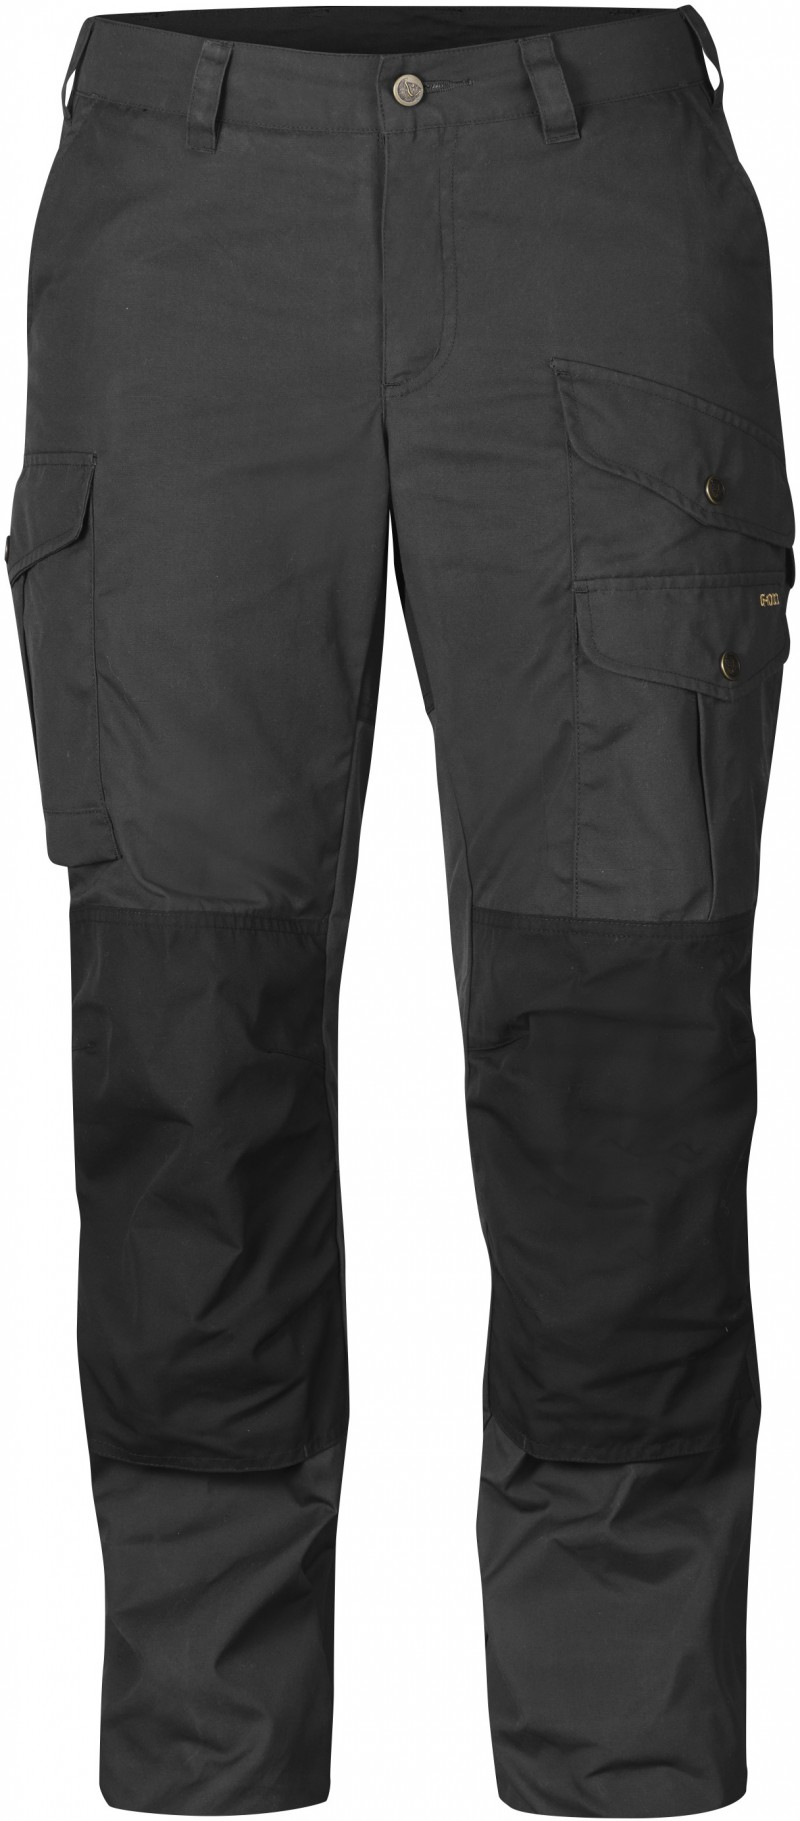 FjallRaven Barents Pro W. Winter Dark Grey-30